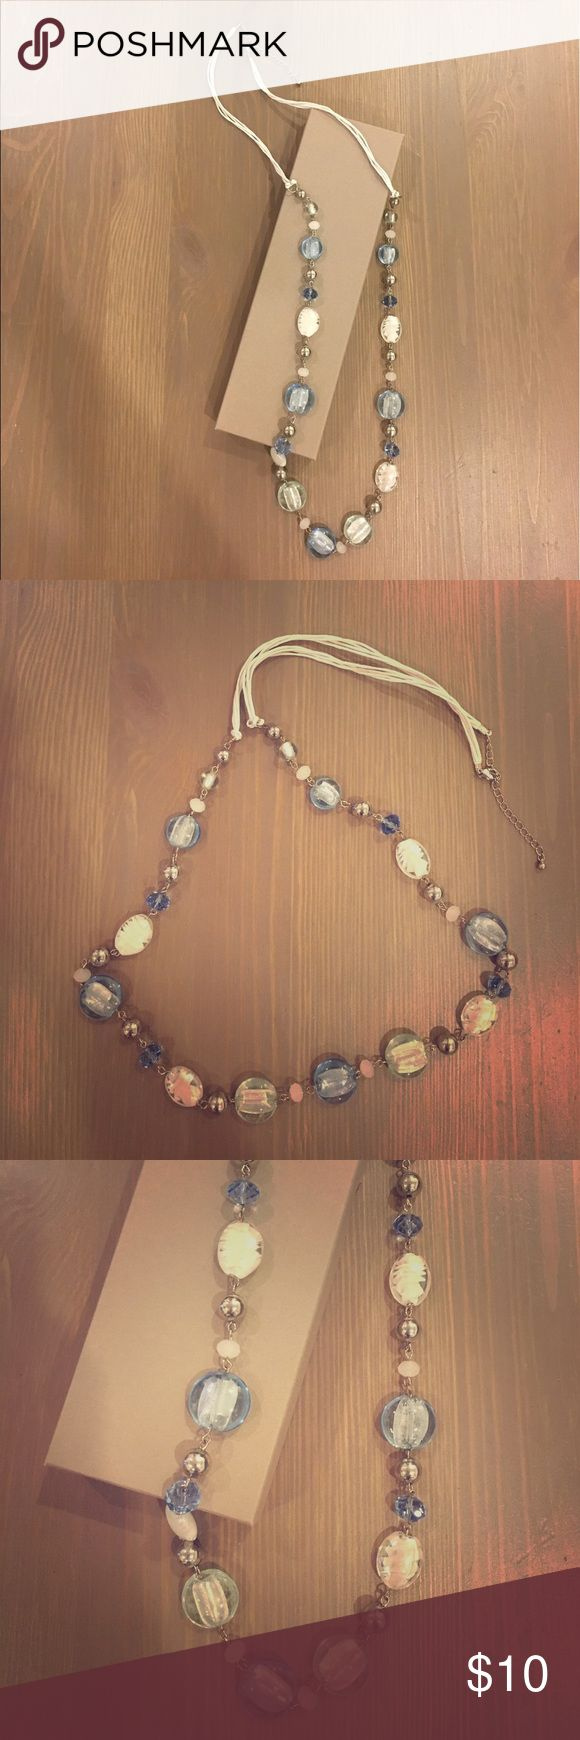 """NWOT Accessorize blue and white necklace Beautiful necklace with blue and white crystal and glass beads and metal beads. 37"""" with 3"""" extender. Accessorize Jewelry Necklaces"""